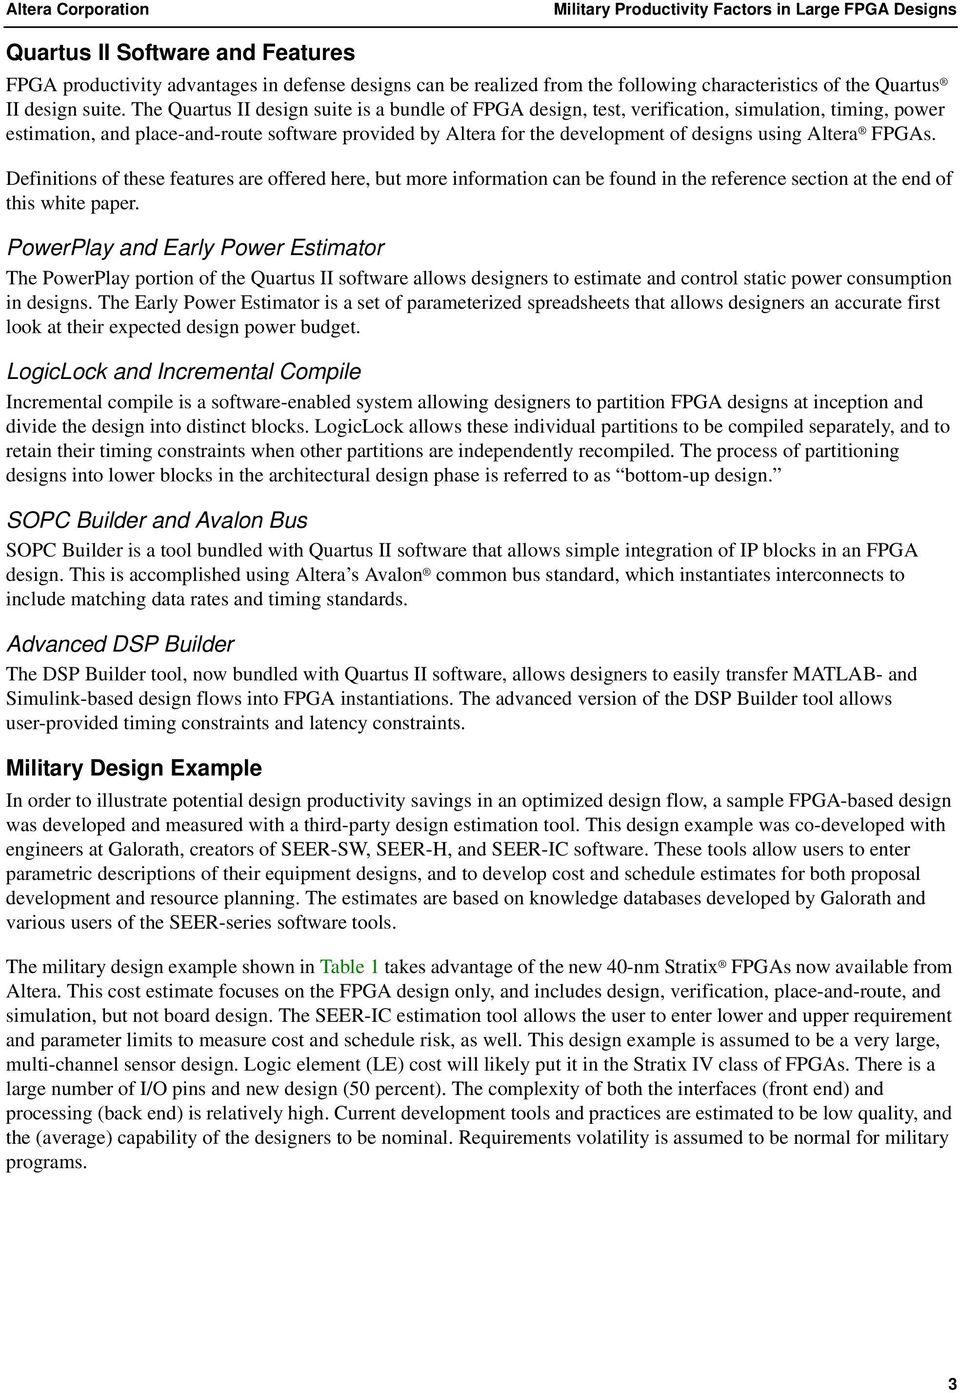 Altera FPGAs. Definitions of these features are offered here, but more information can be found in the reference section at the end of this white paper.